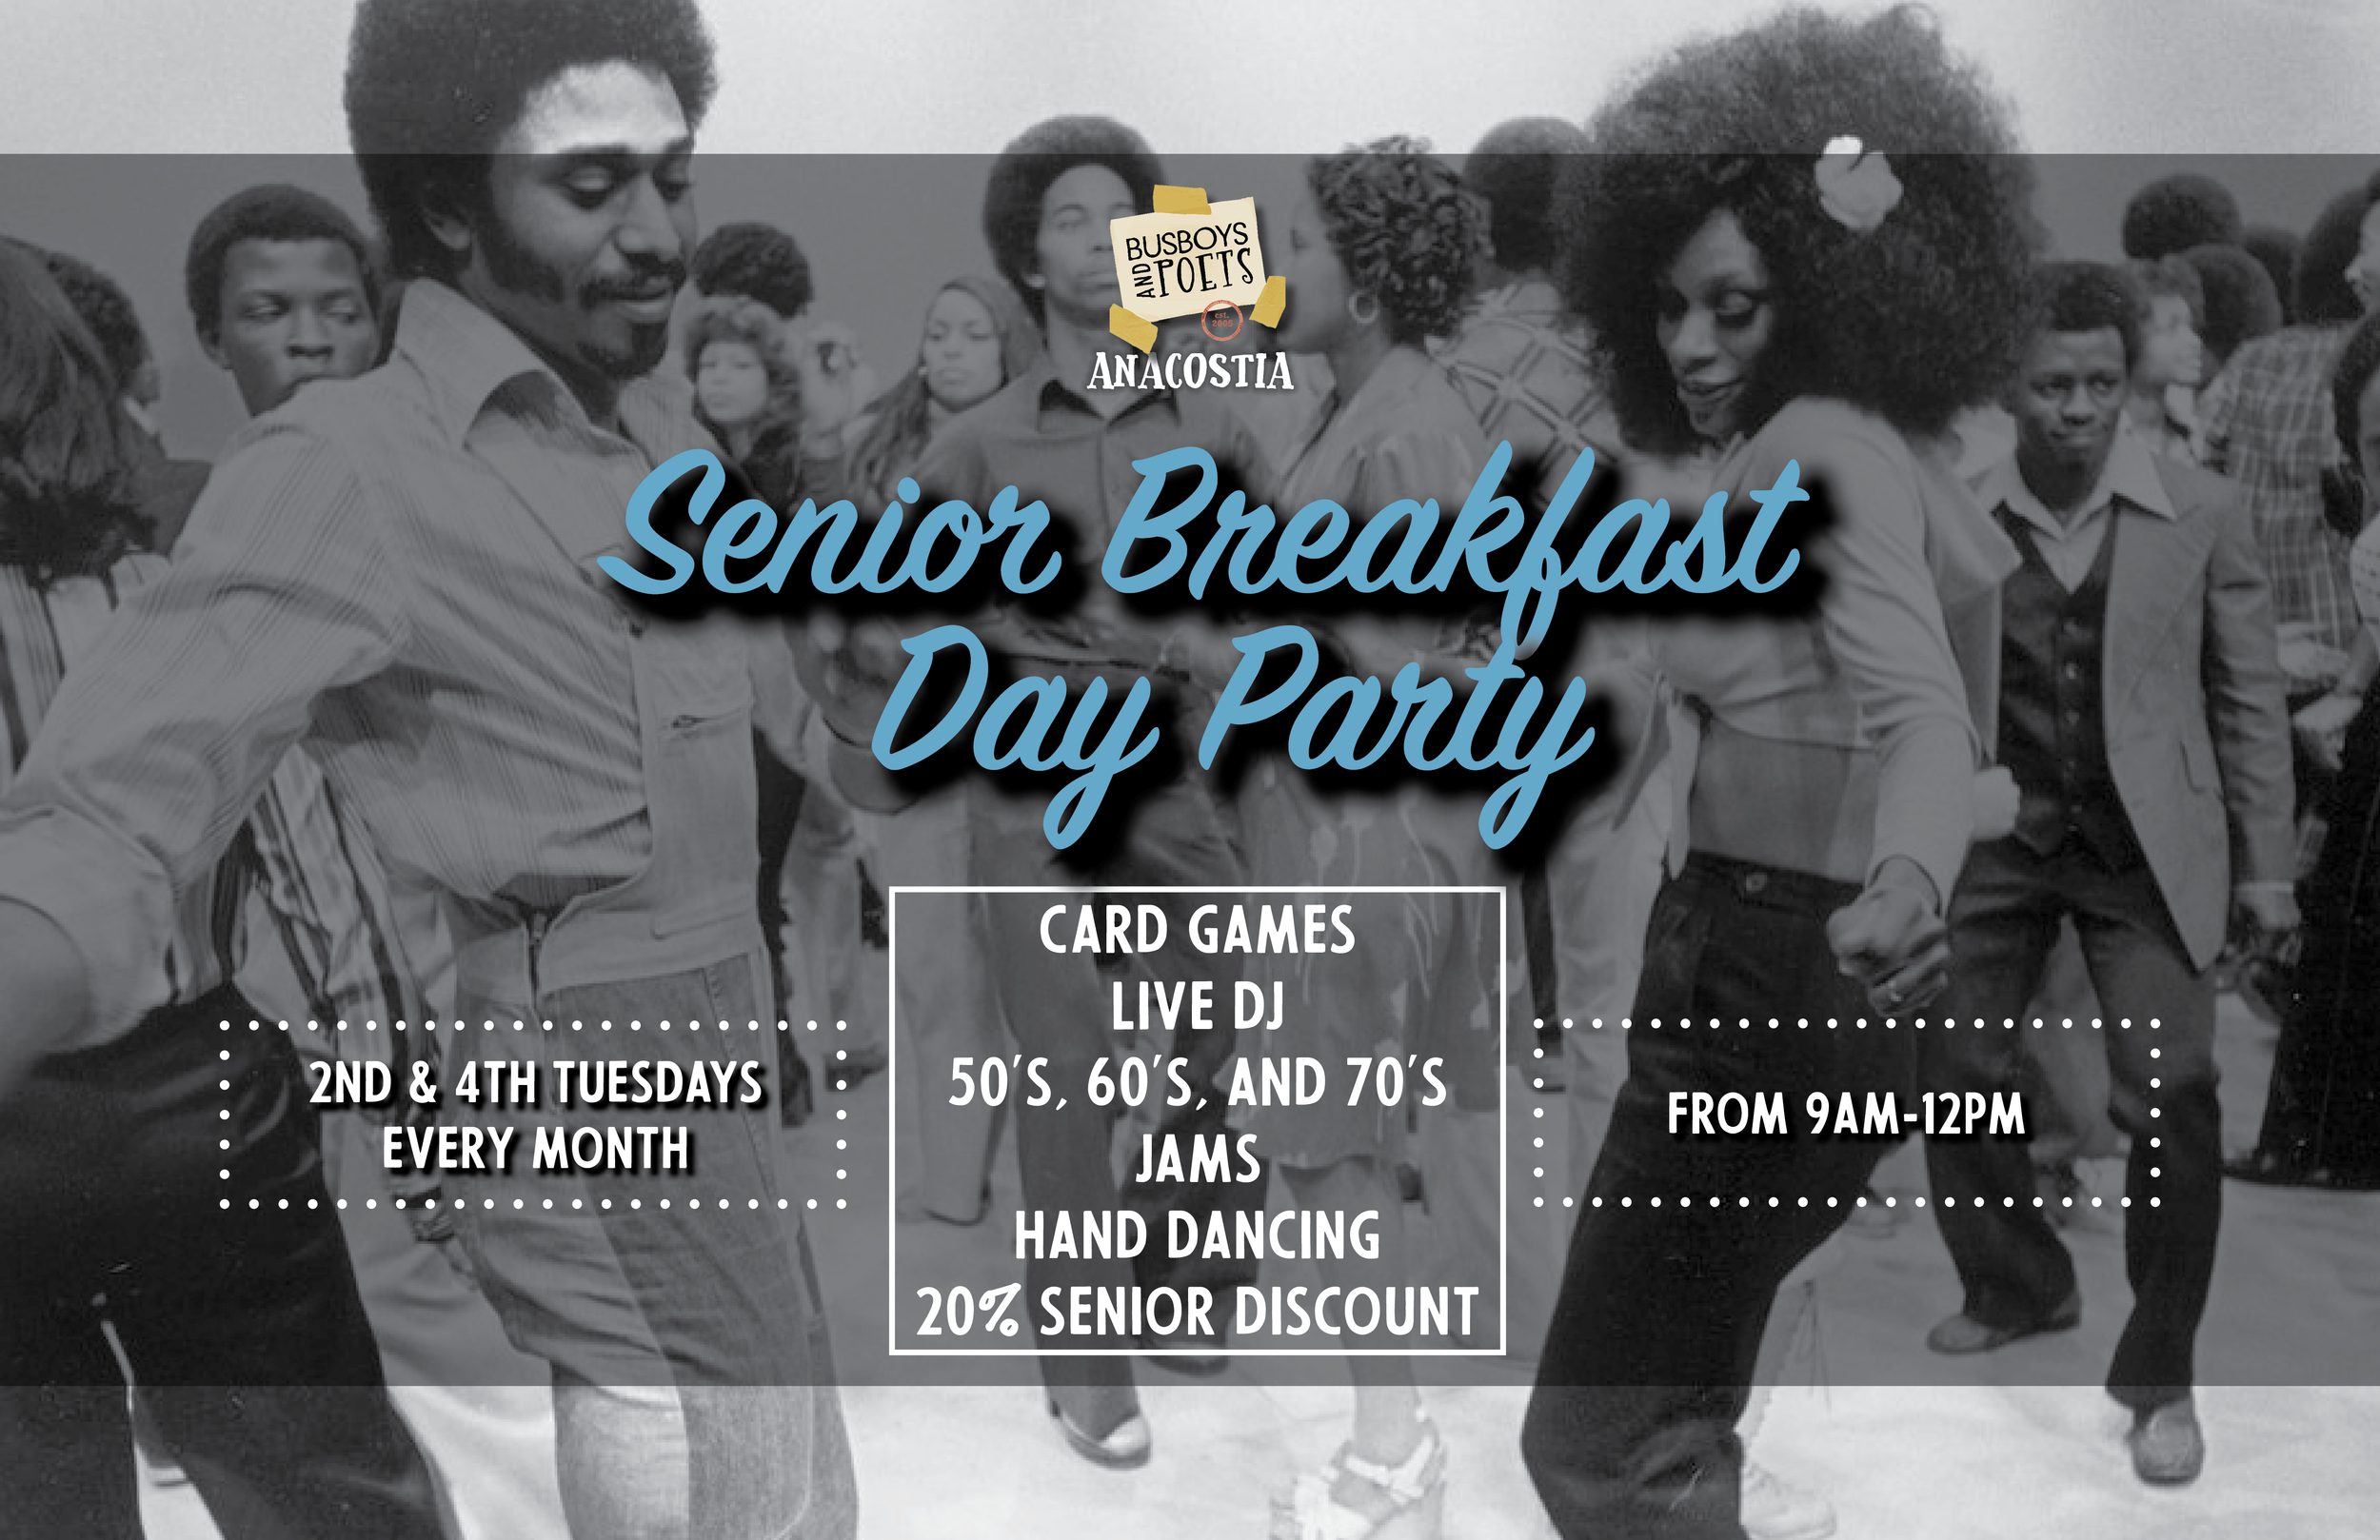 Senior Breakfast Day Party 17x11 (1).png